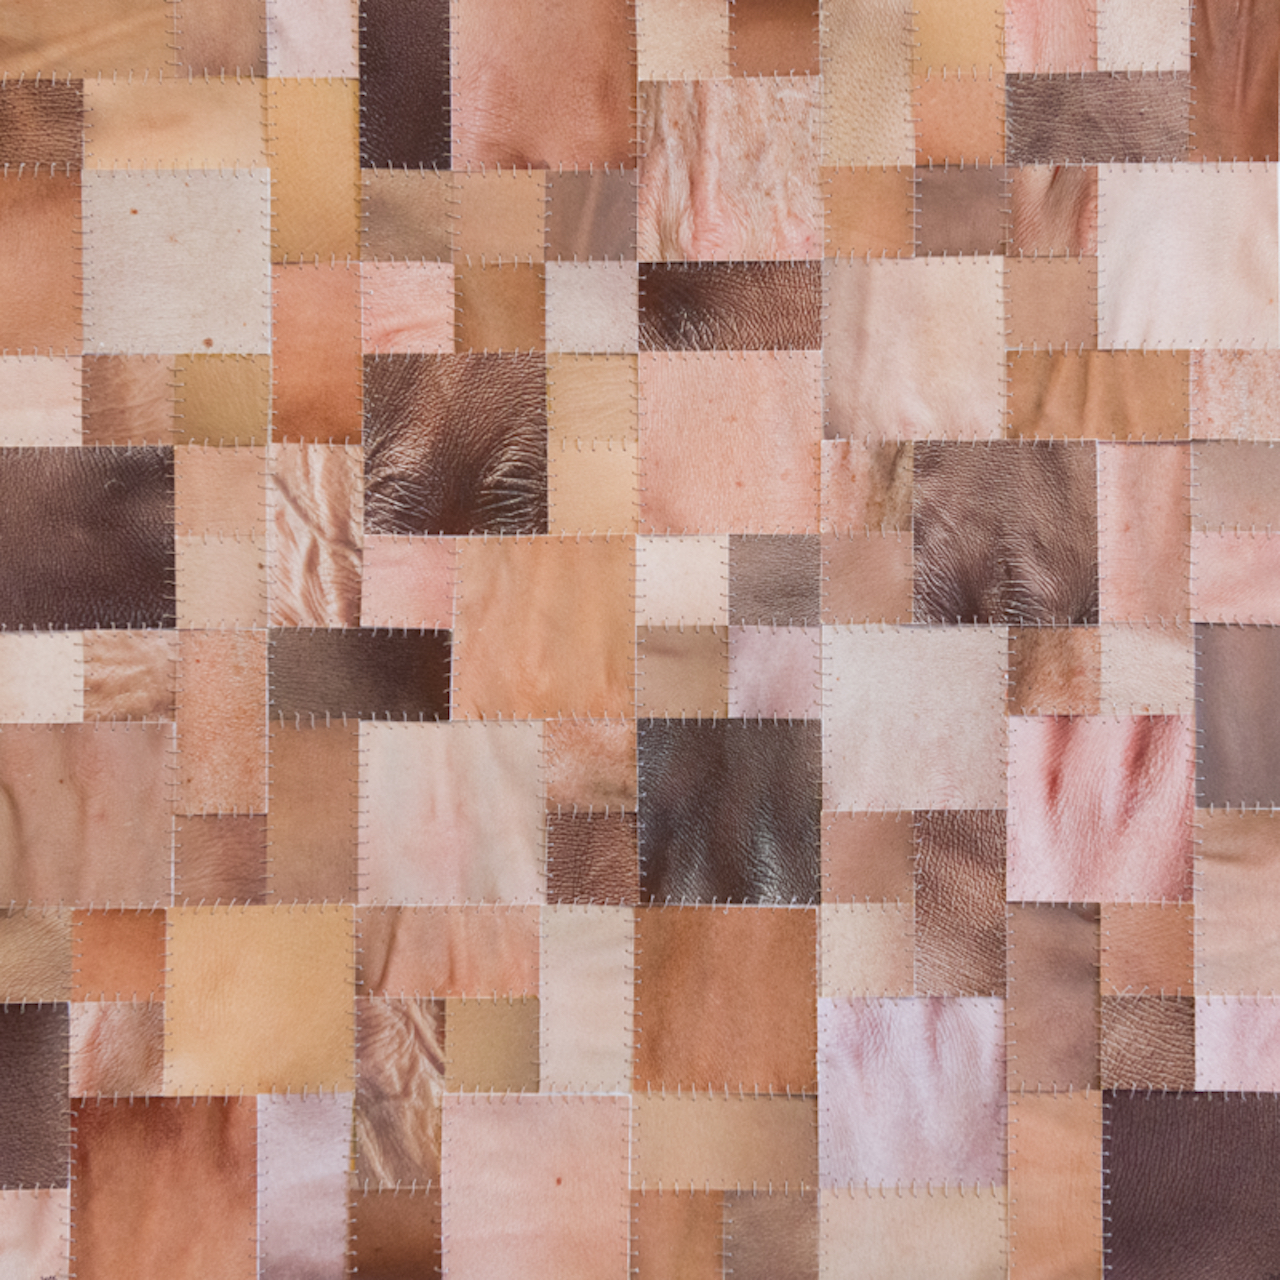 """Capucine Bourcart """"Skin Quilt"""" (2015) (photo courtesy of the artist)"""